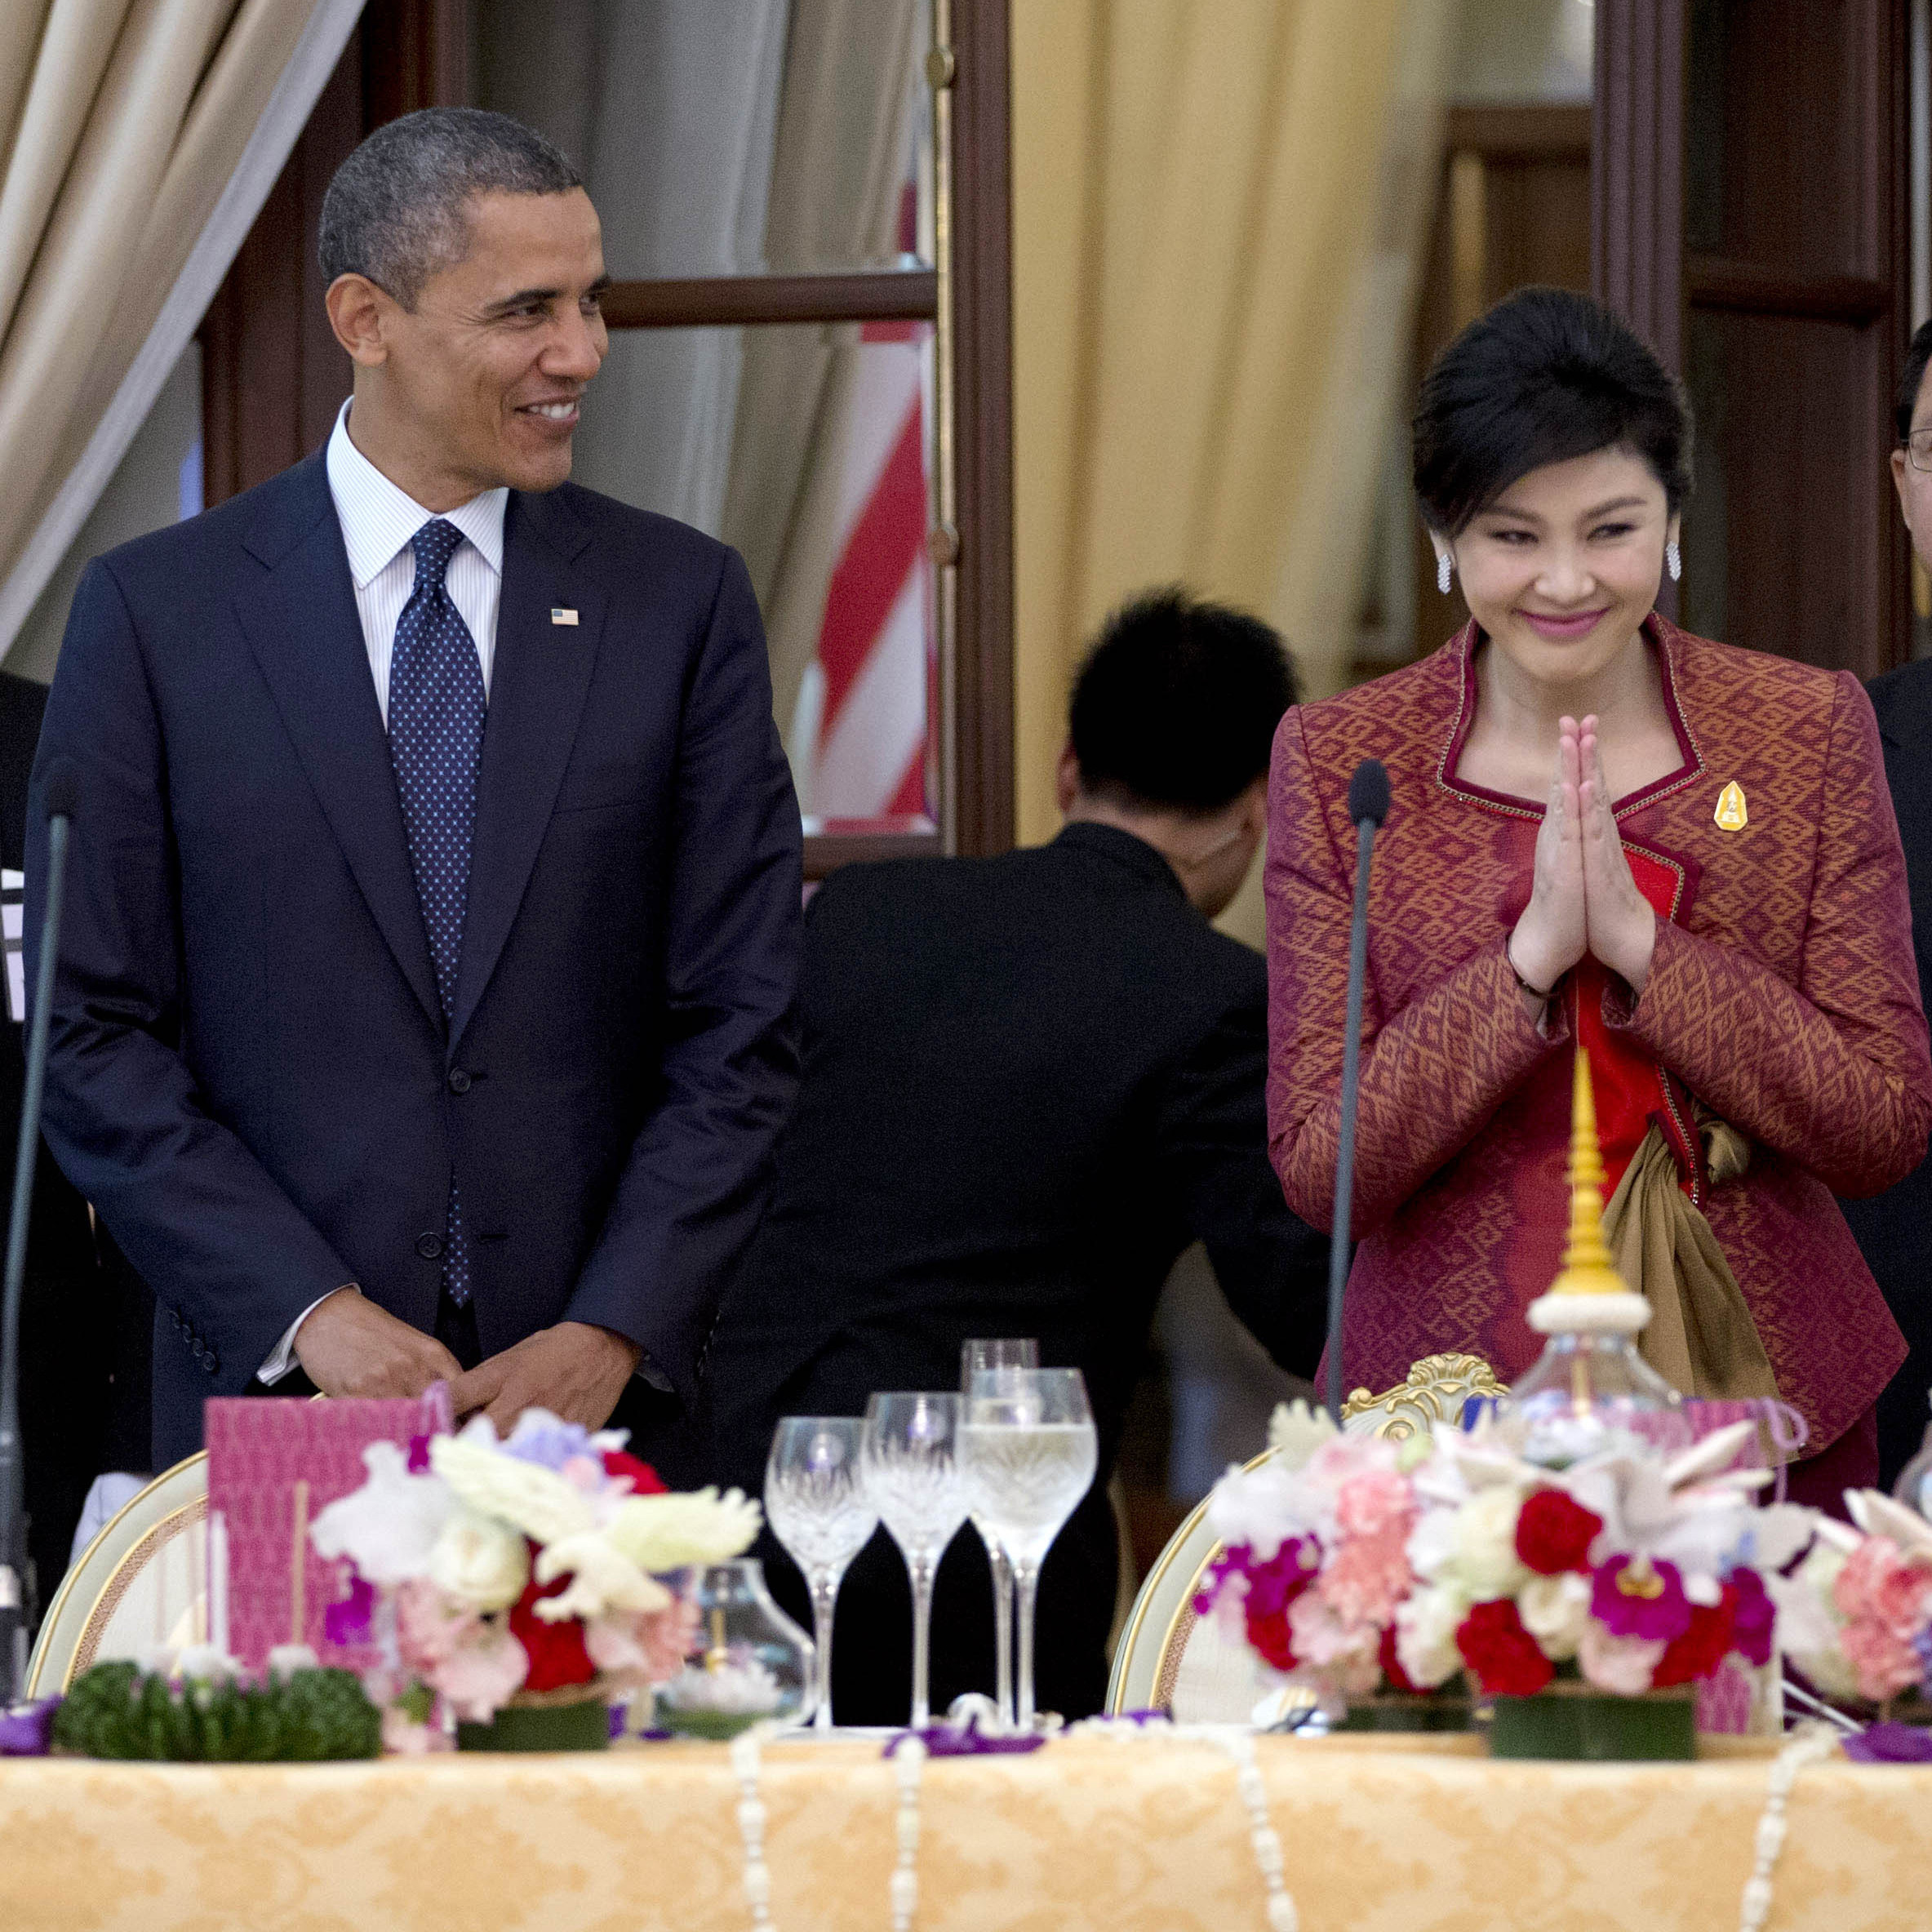 President Obama and Thai Prime Minister Yingluck Shinawatra (second from right) arrived for an official dinner Sunday at Government House in Bangkok, Thailand.